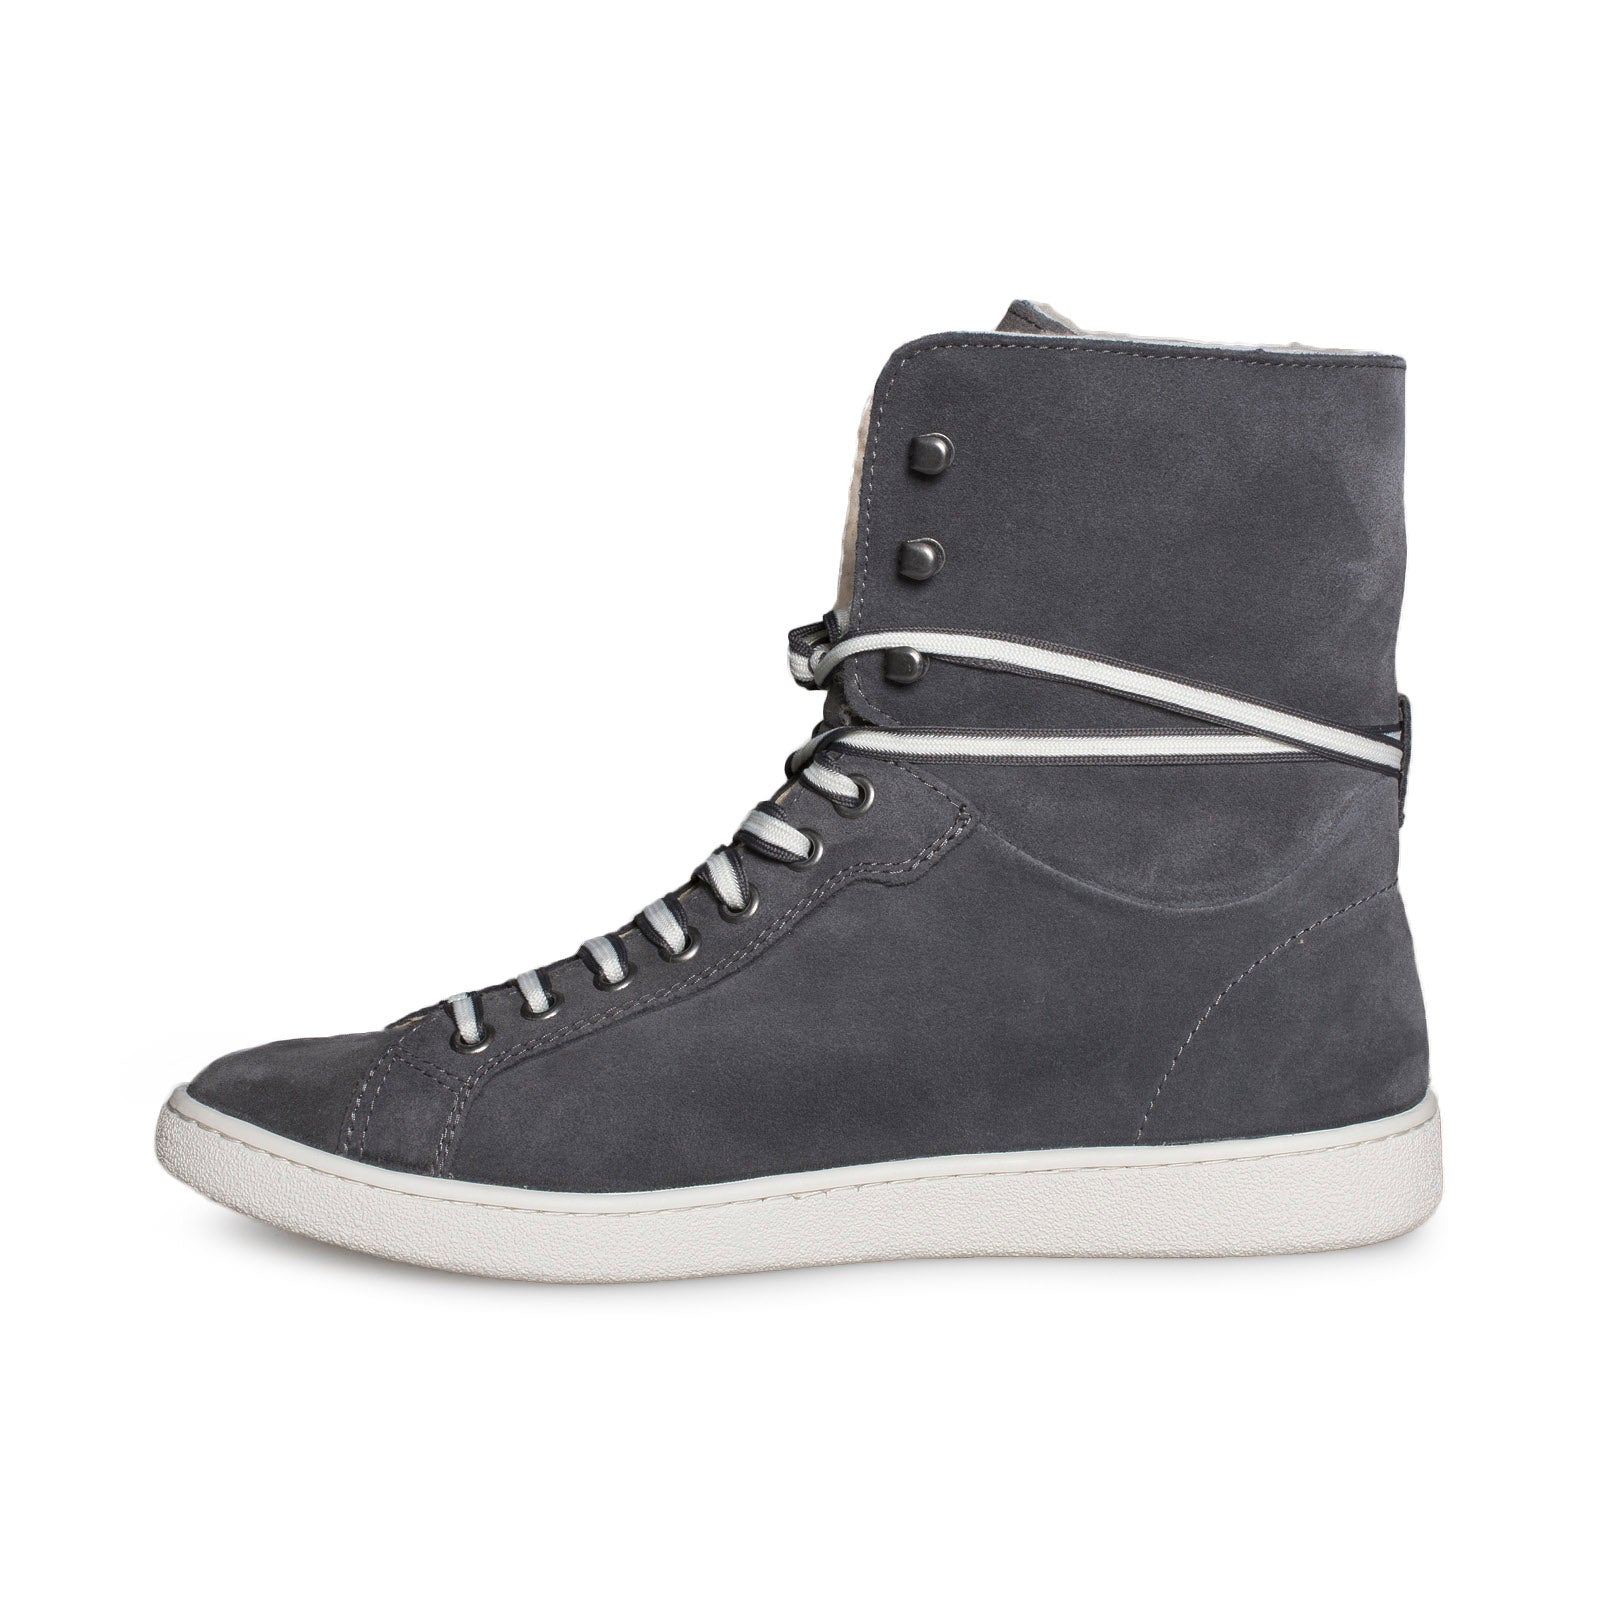 0ed870479c0 Women's Sneakers Tagged